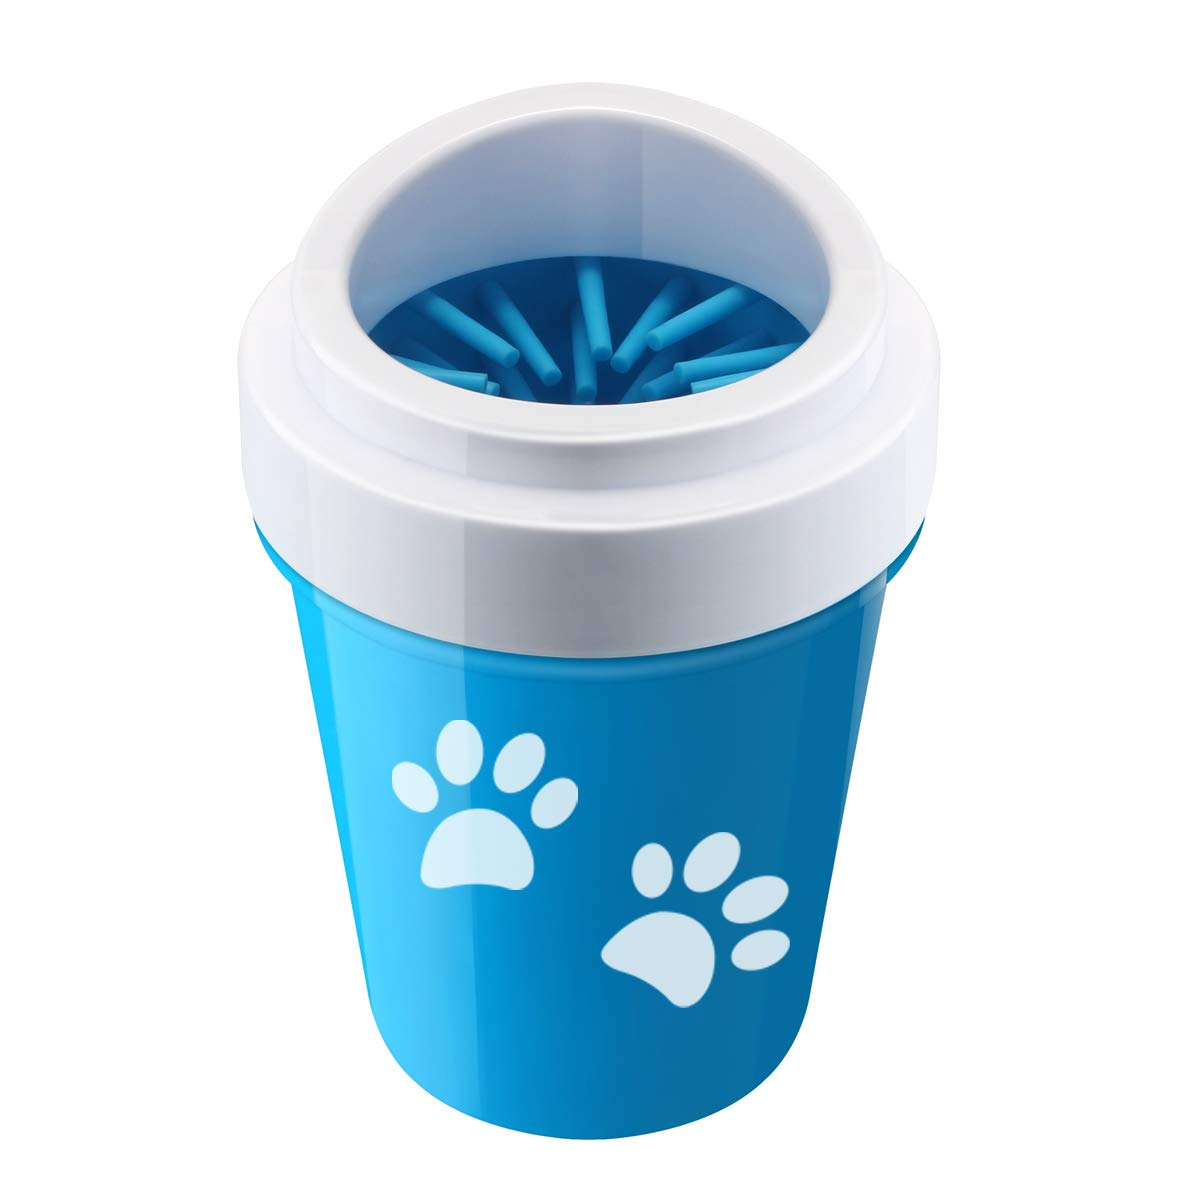 Lmlly Portable Dog Paw Cleaner, Outdoor Pet Feet Washer with Silicone Soft Bristles, Perfect 100% BPA Free Dog Accessories